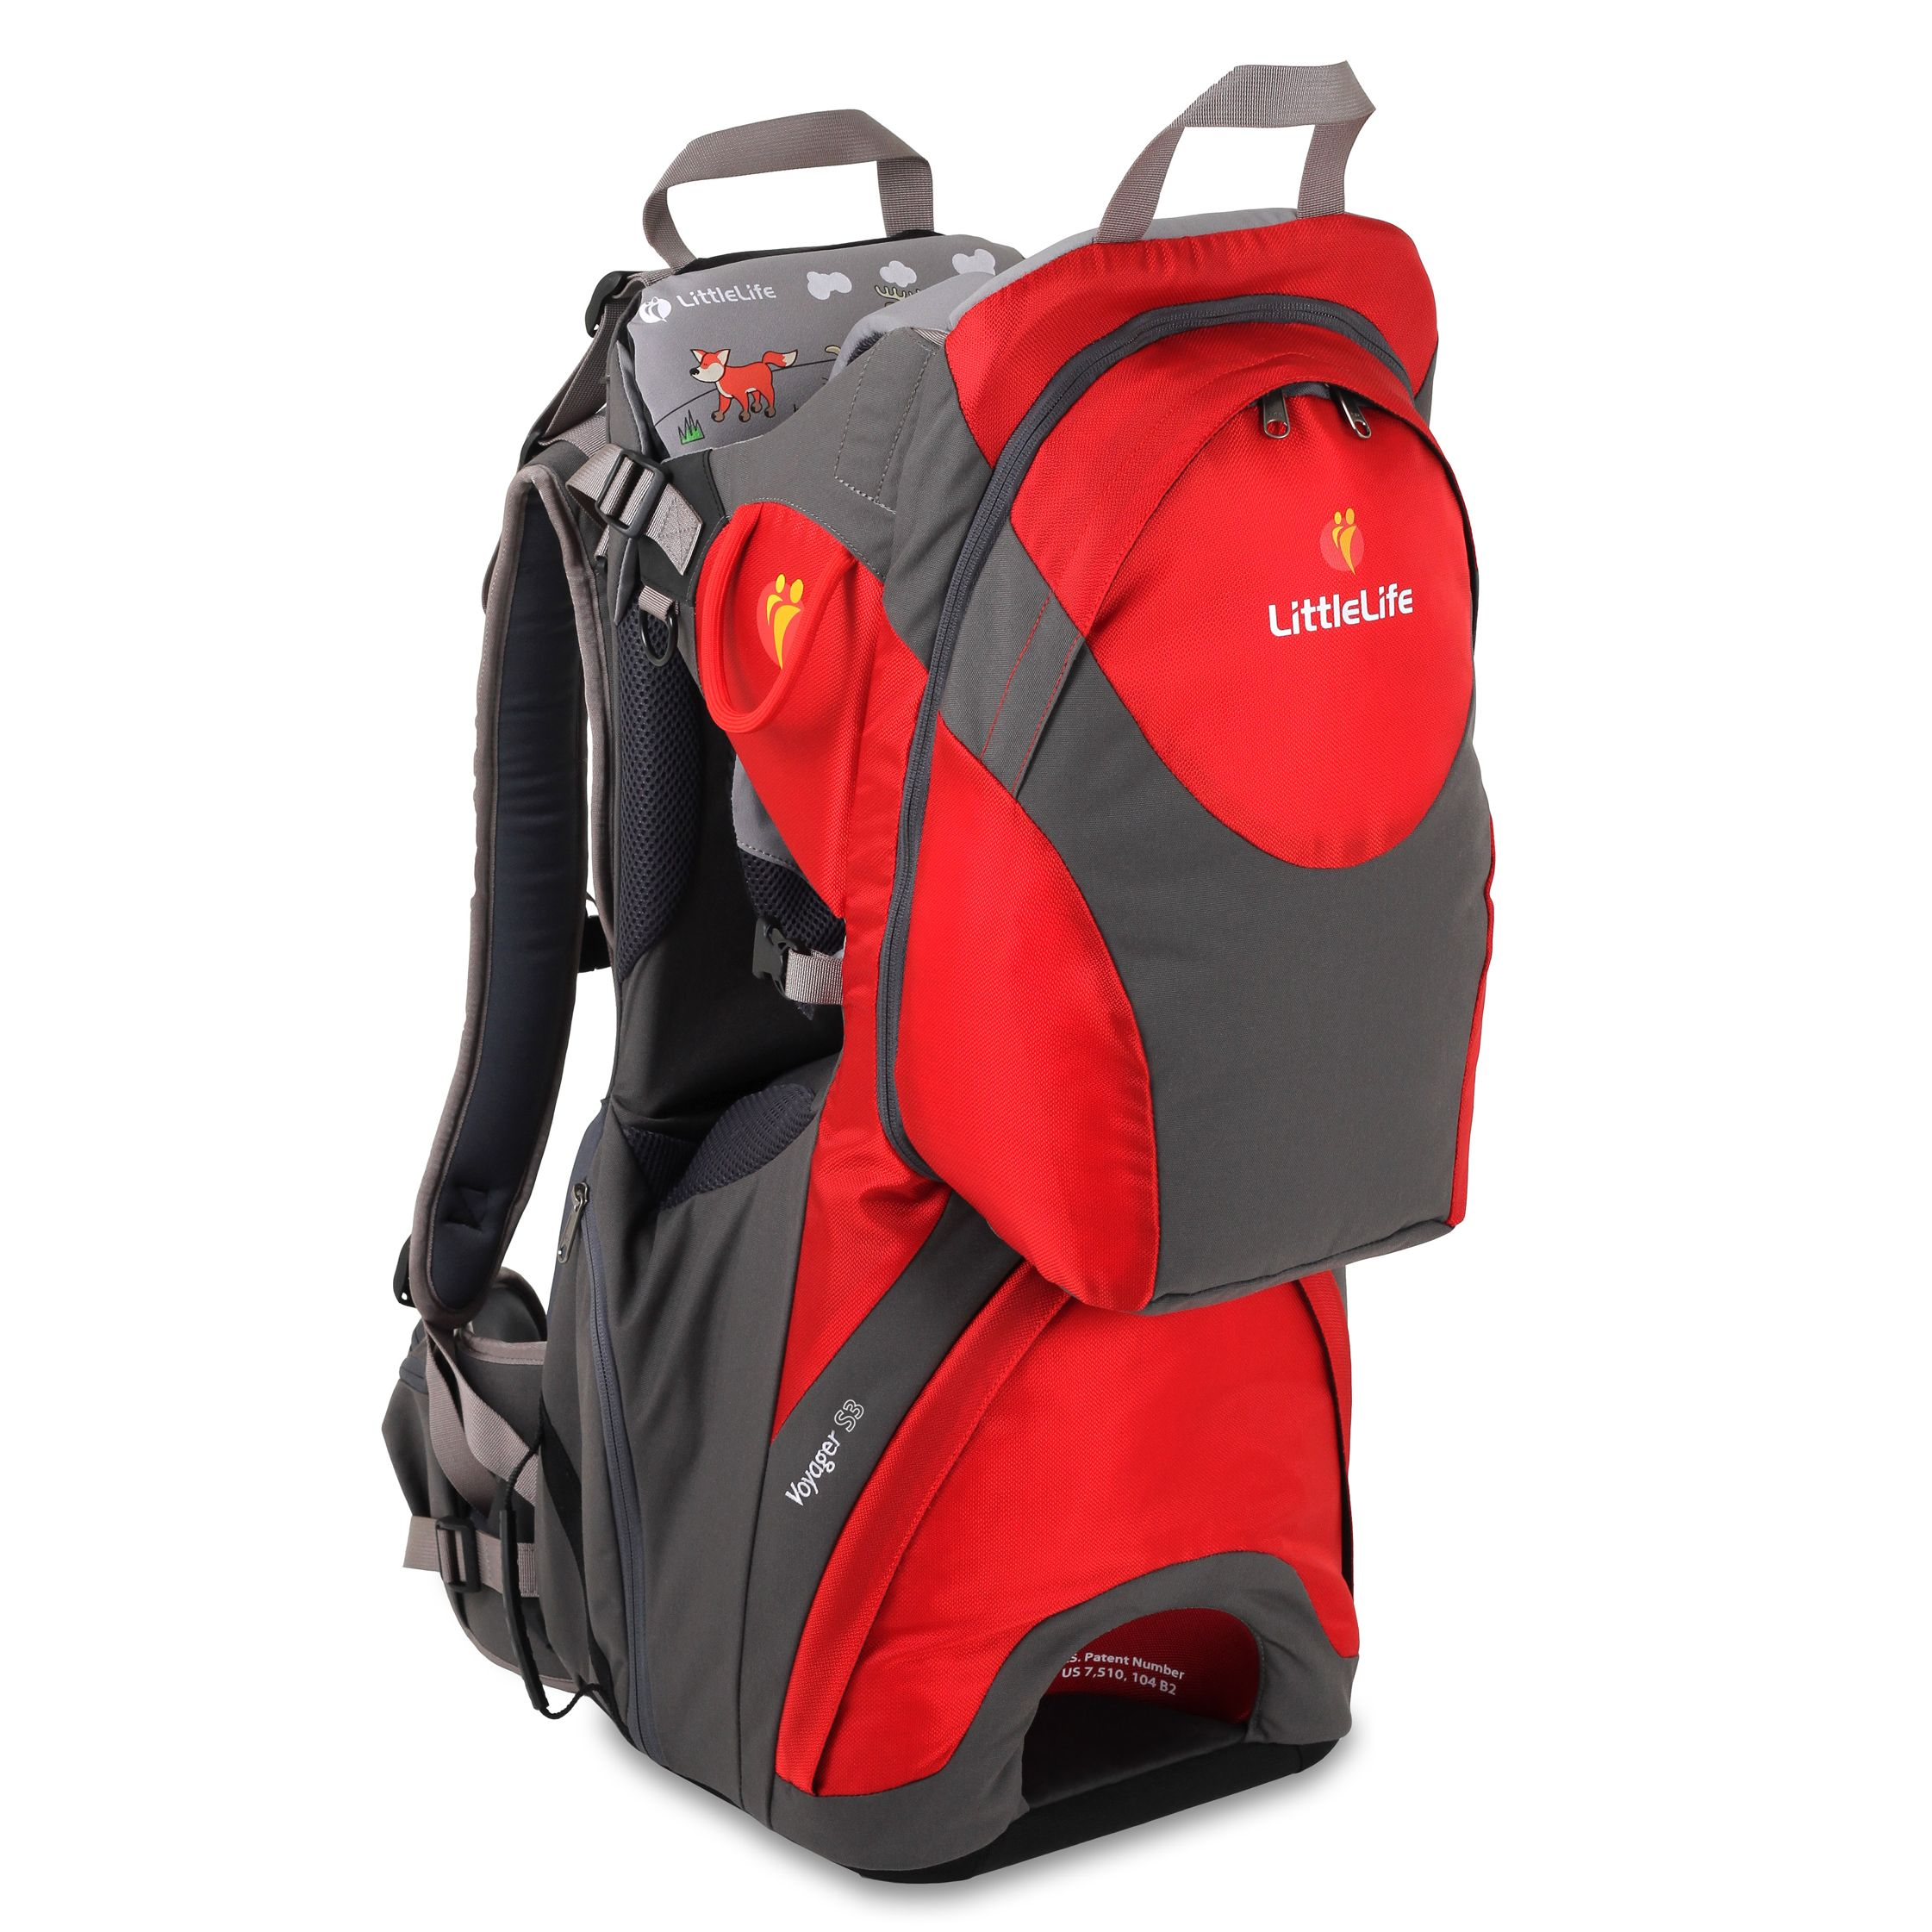 Littlelife LittleLife Voyager S3 Baby Carrier, Red